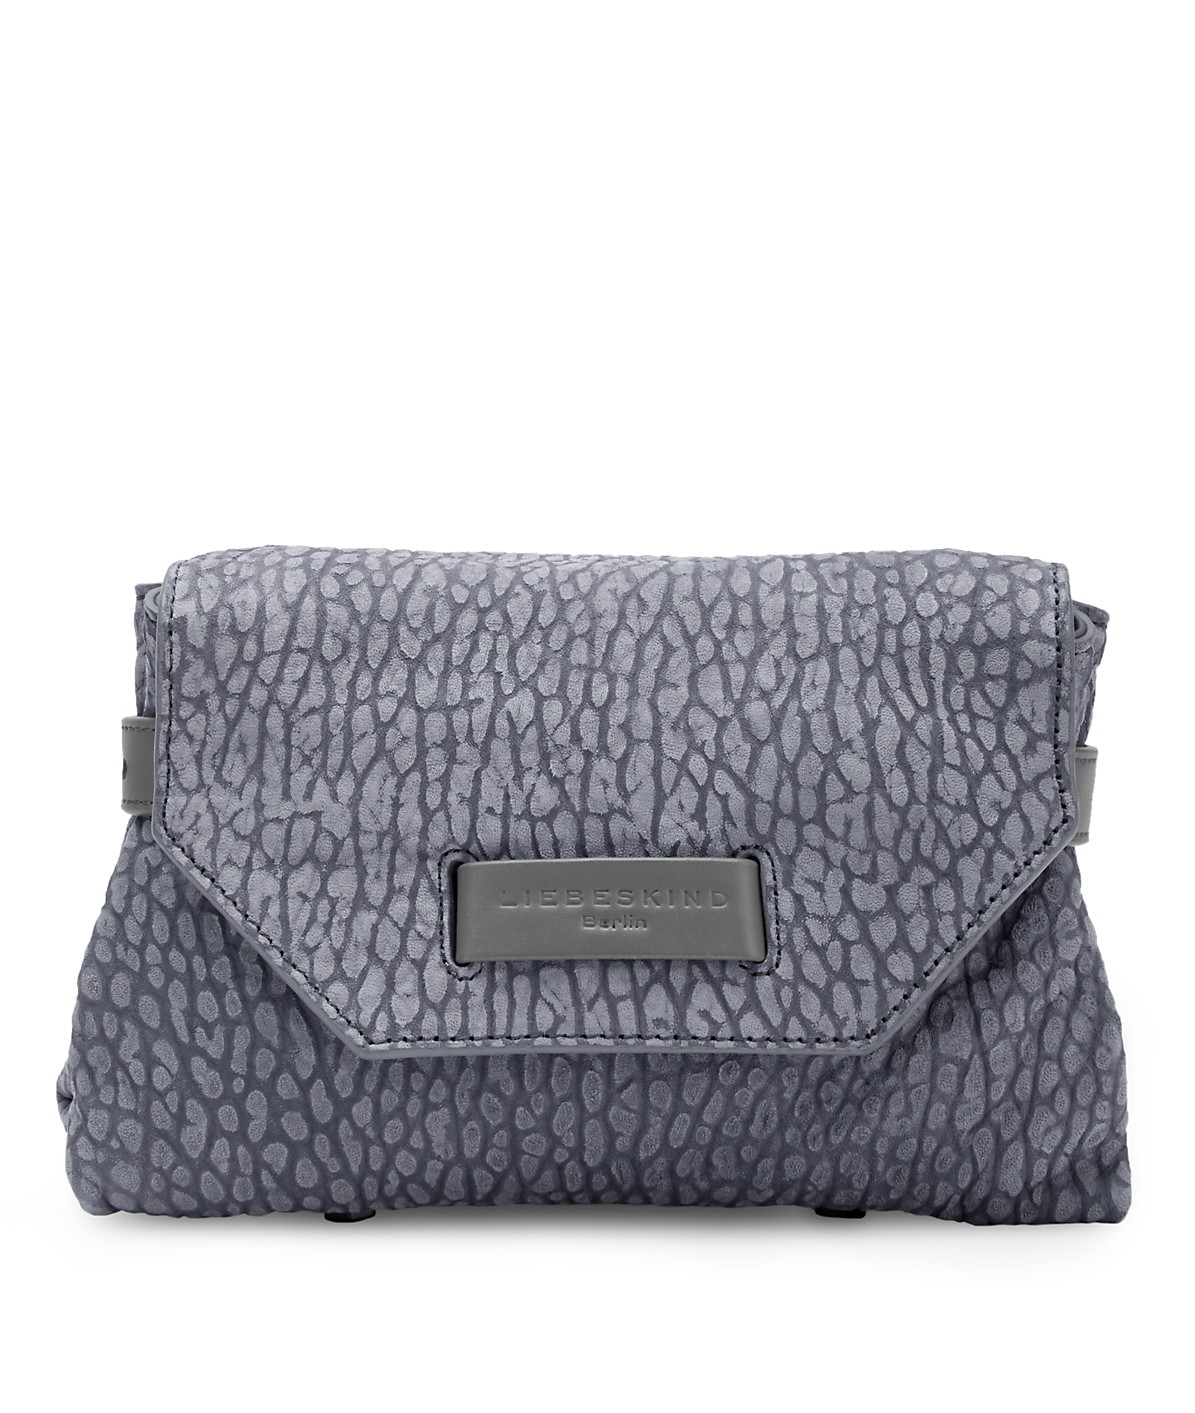 Itami cross-body bag from liebeskind